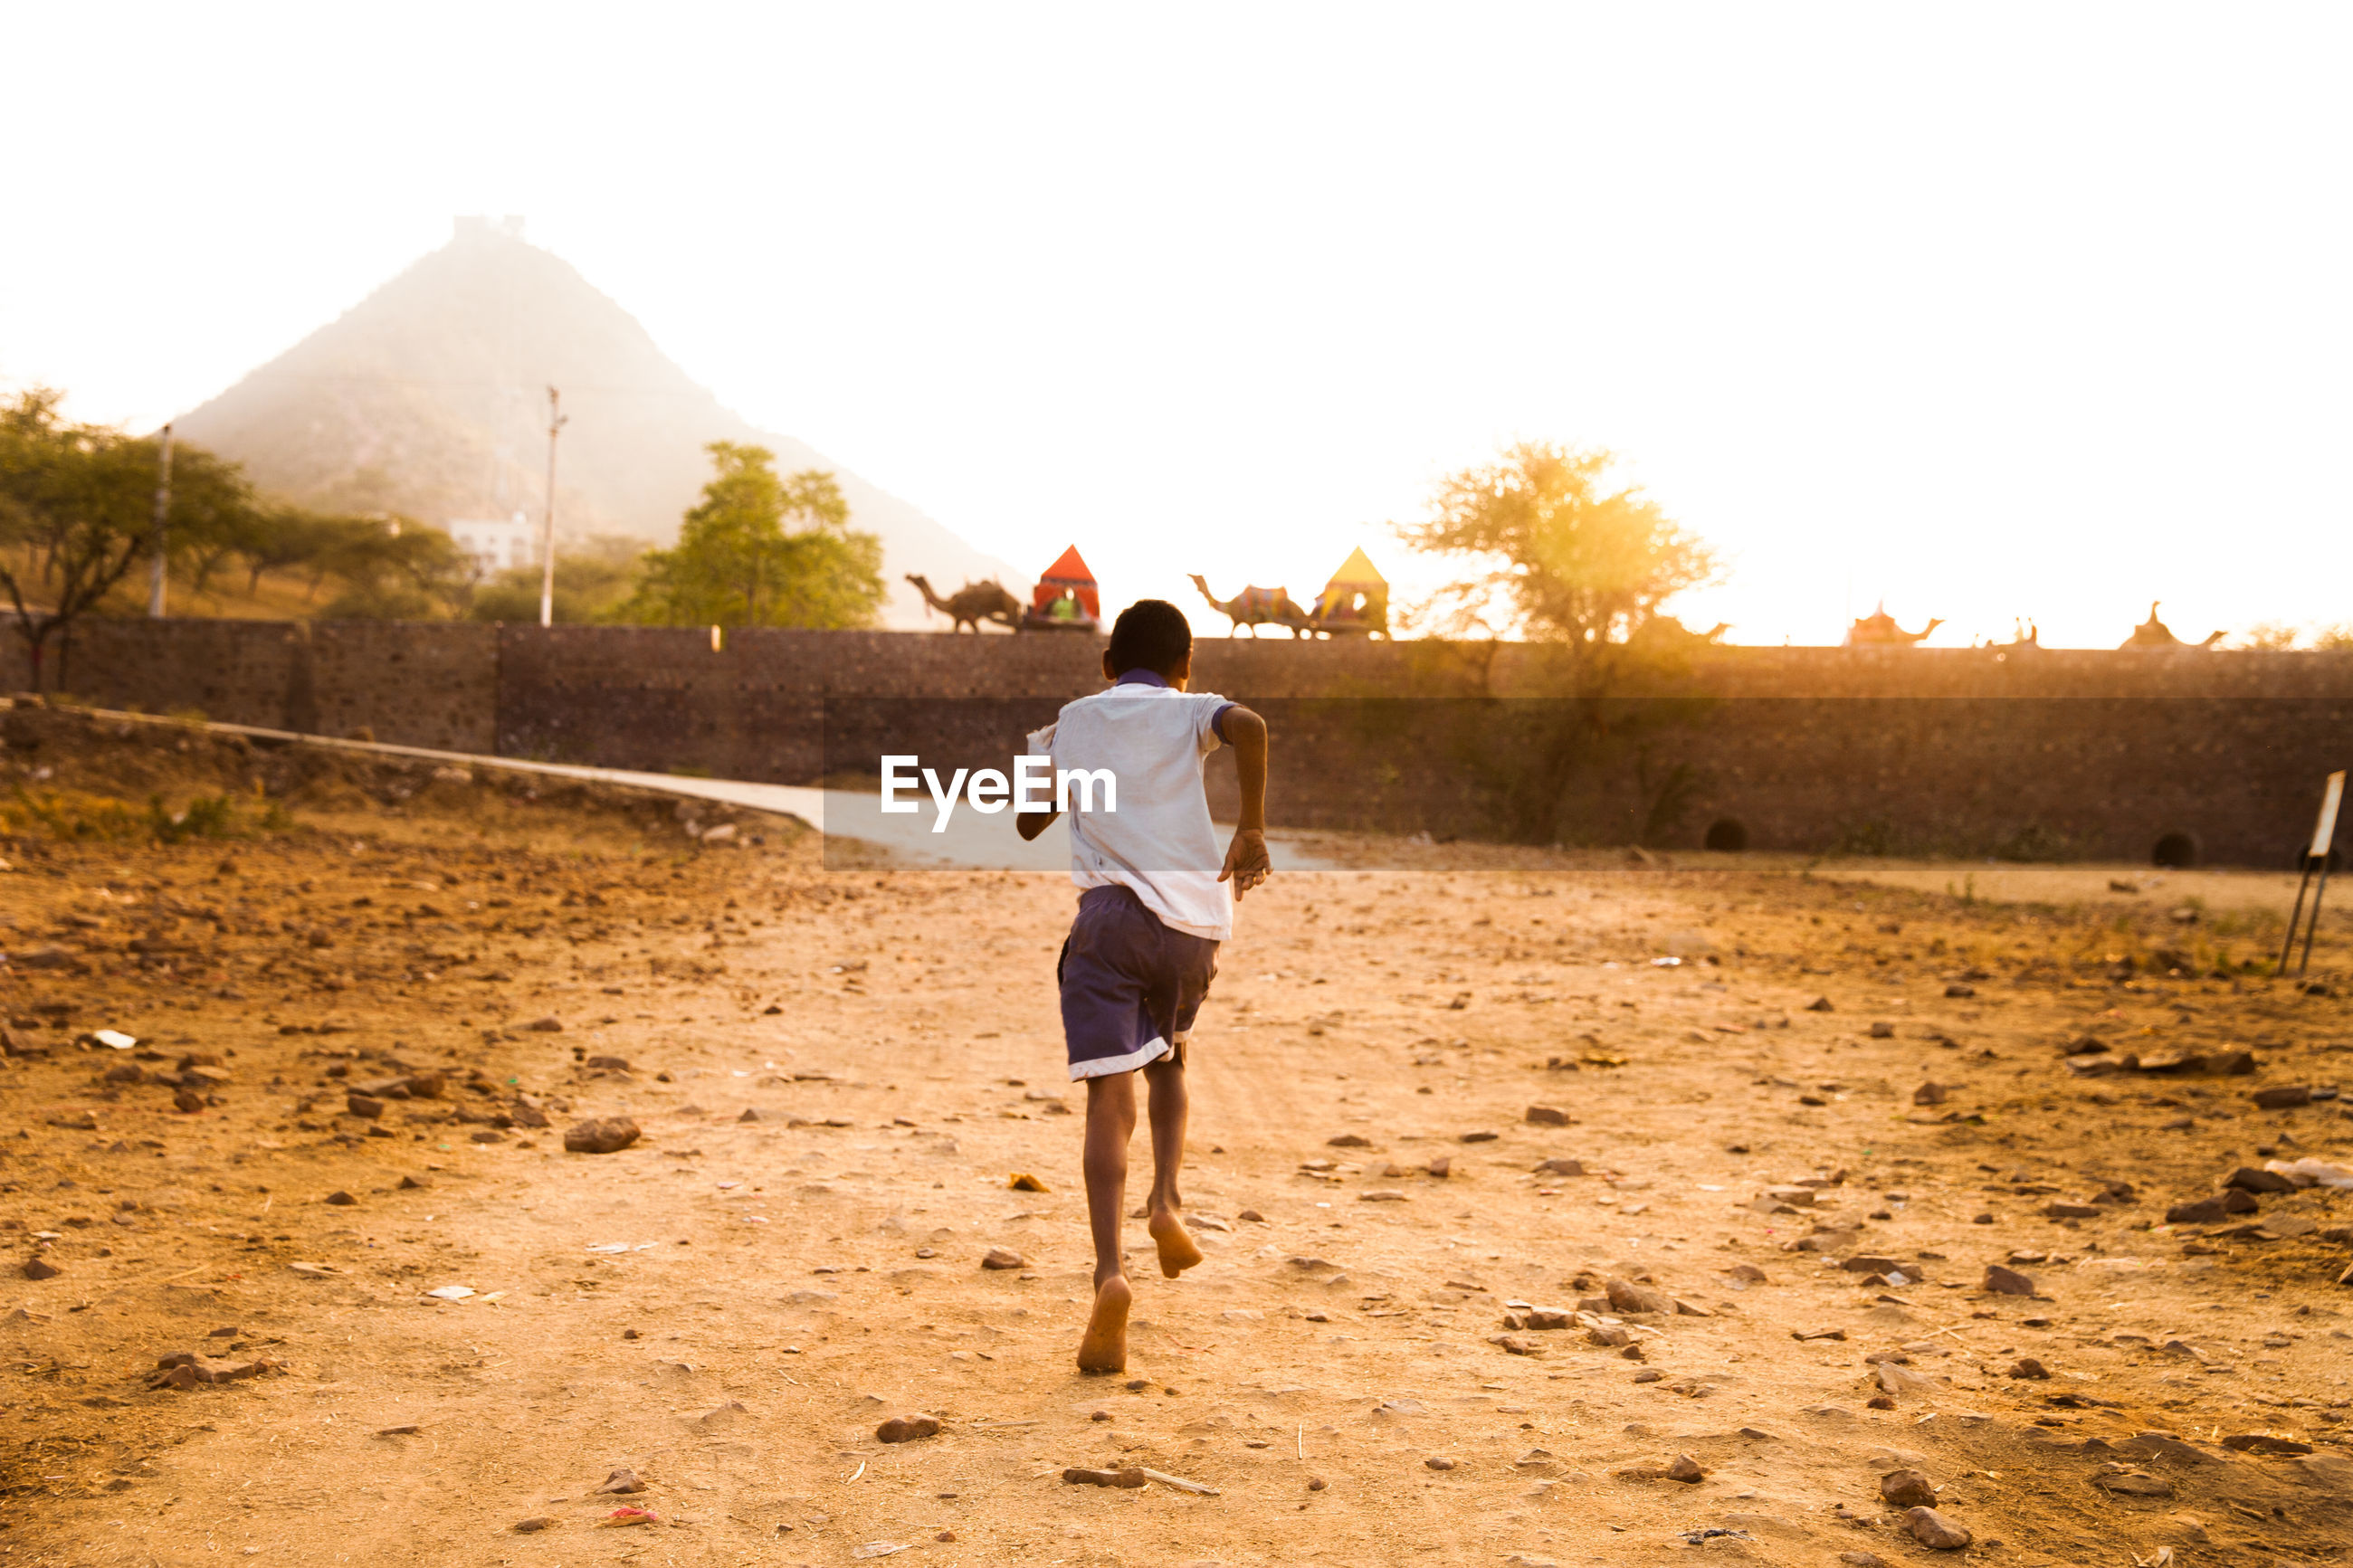 Rear view of boy running on field against clear sky during sunset